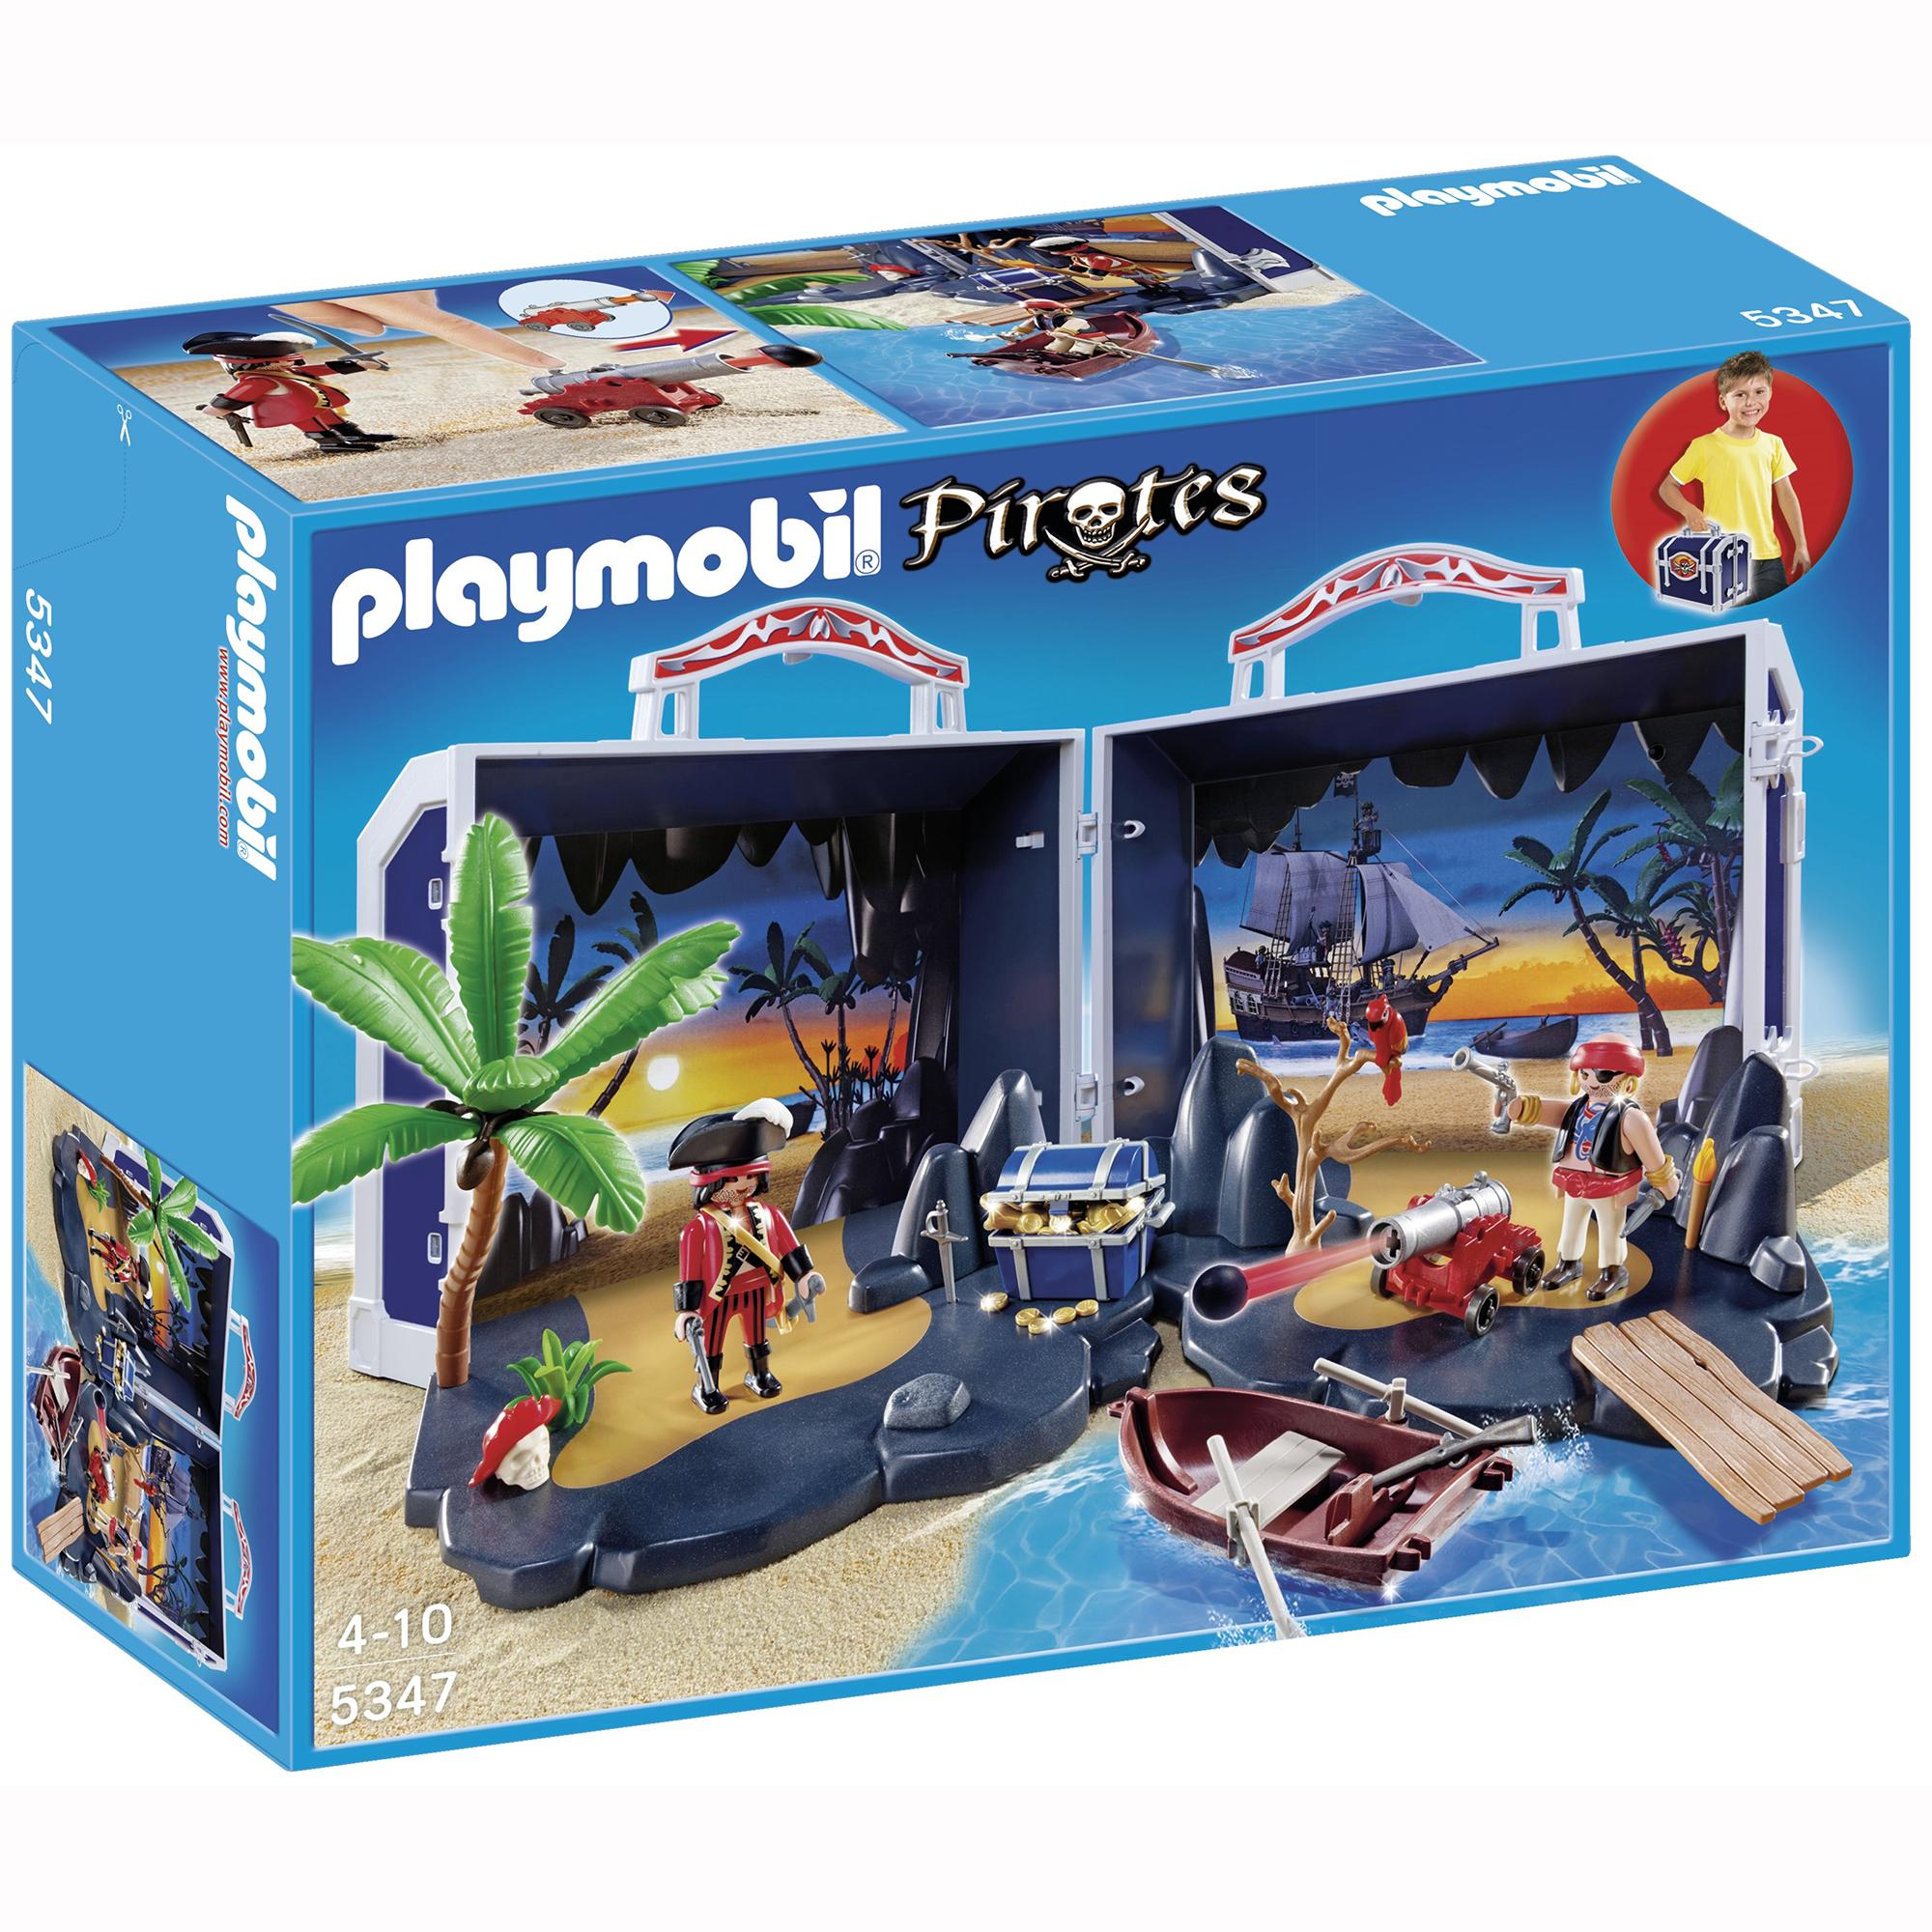 playmobil pirate treasure chest